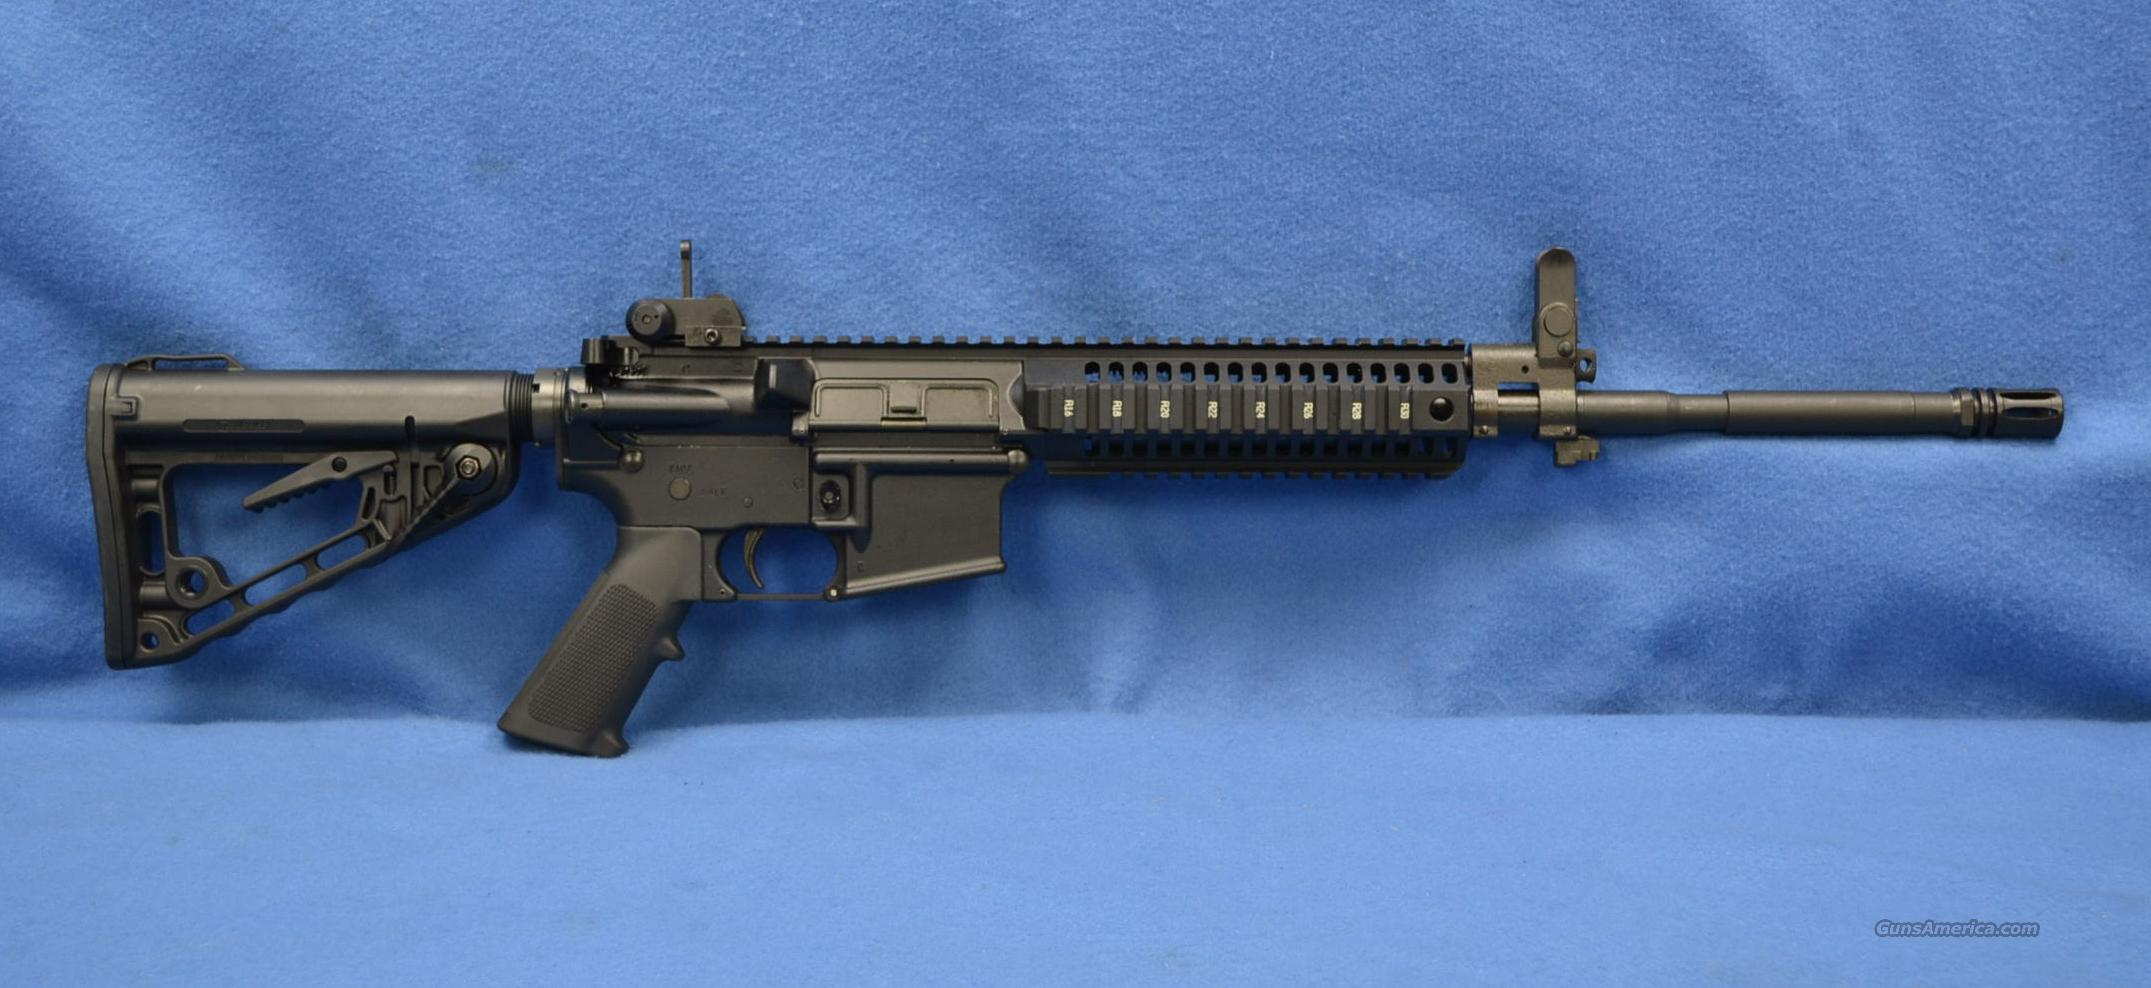 Colt LE6940P 5.56 NATO NEW PISTON GUN AR15 LE 6940  Guns > Rifles > Colt Military/Tactical Rifles